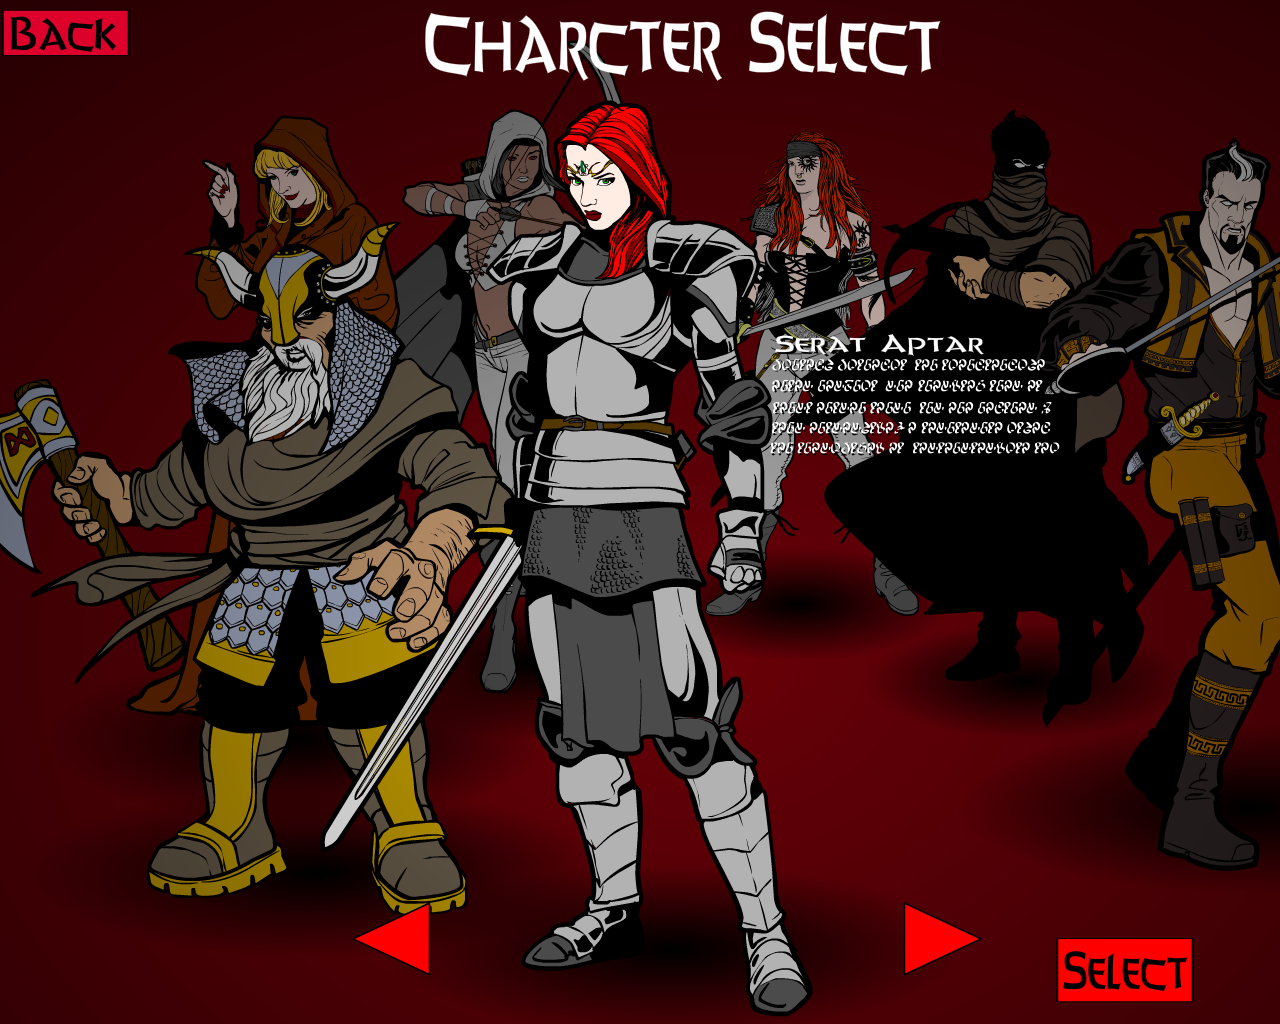 http://www.heromachine.com/wp-content/uploads/2016/05/RPG-Character-Select.png